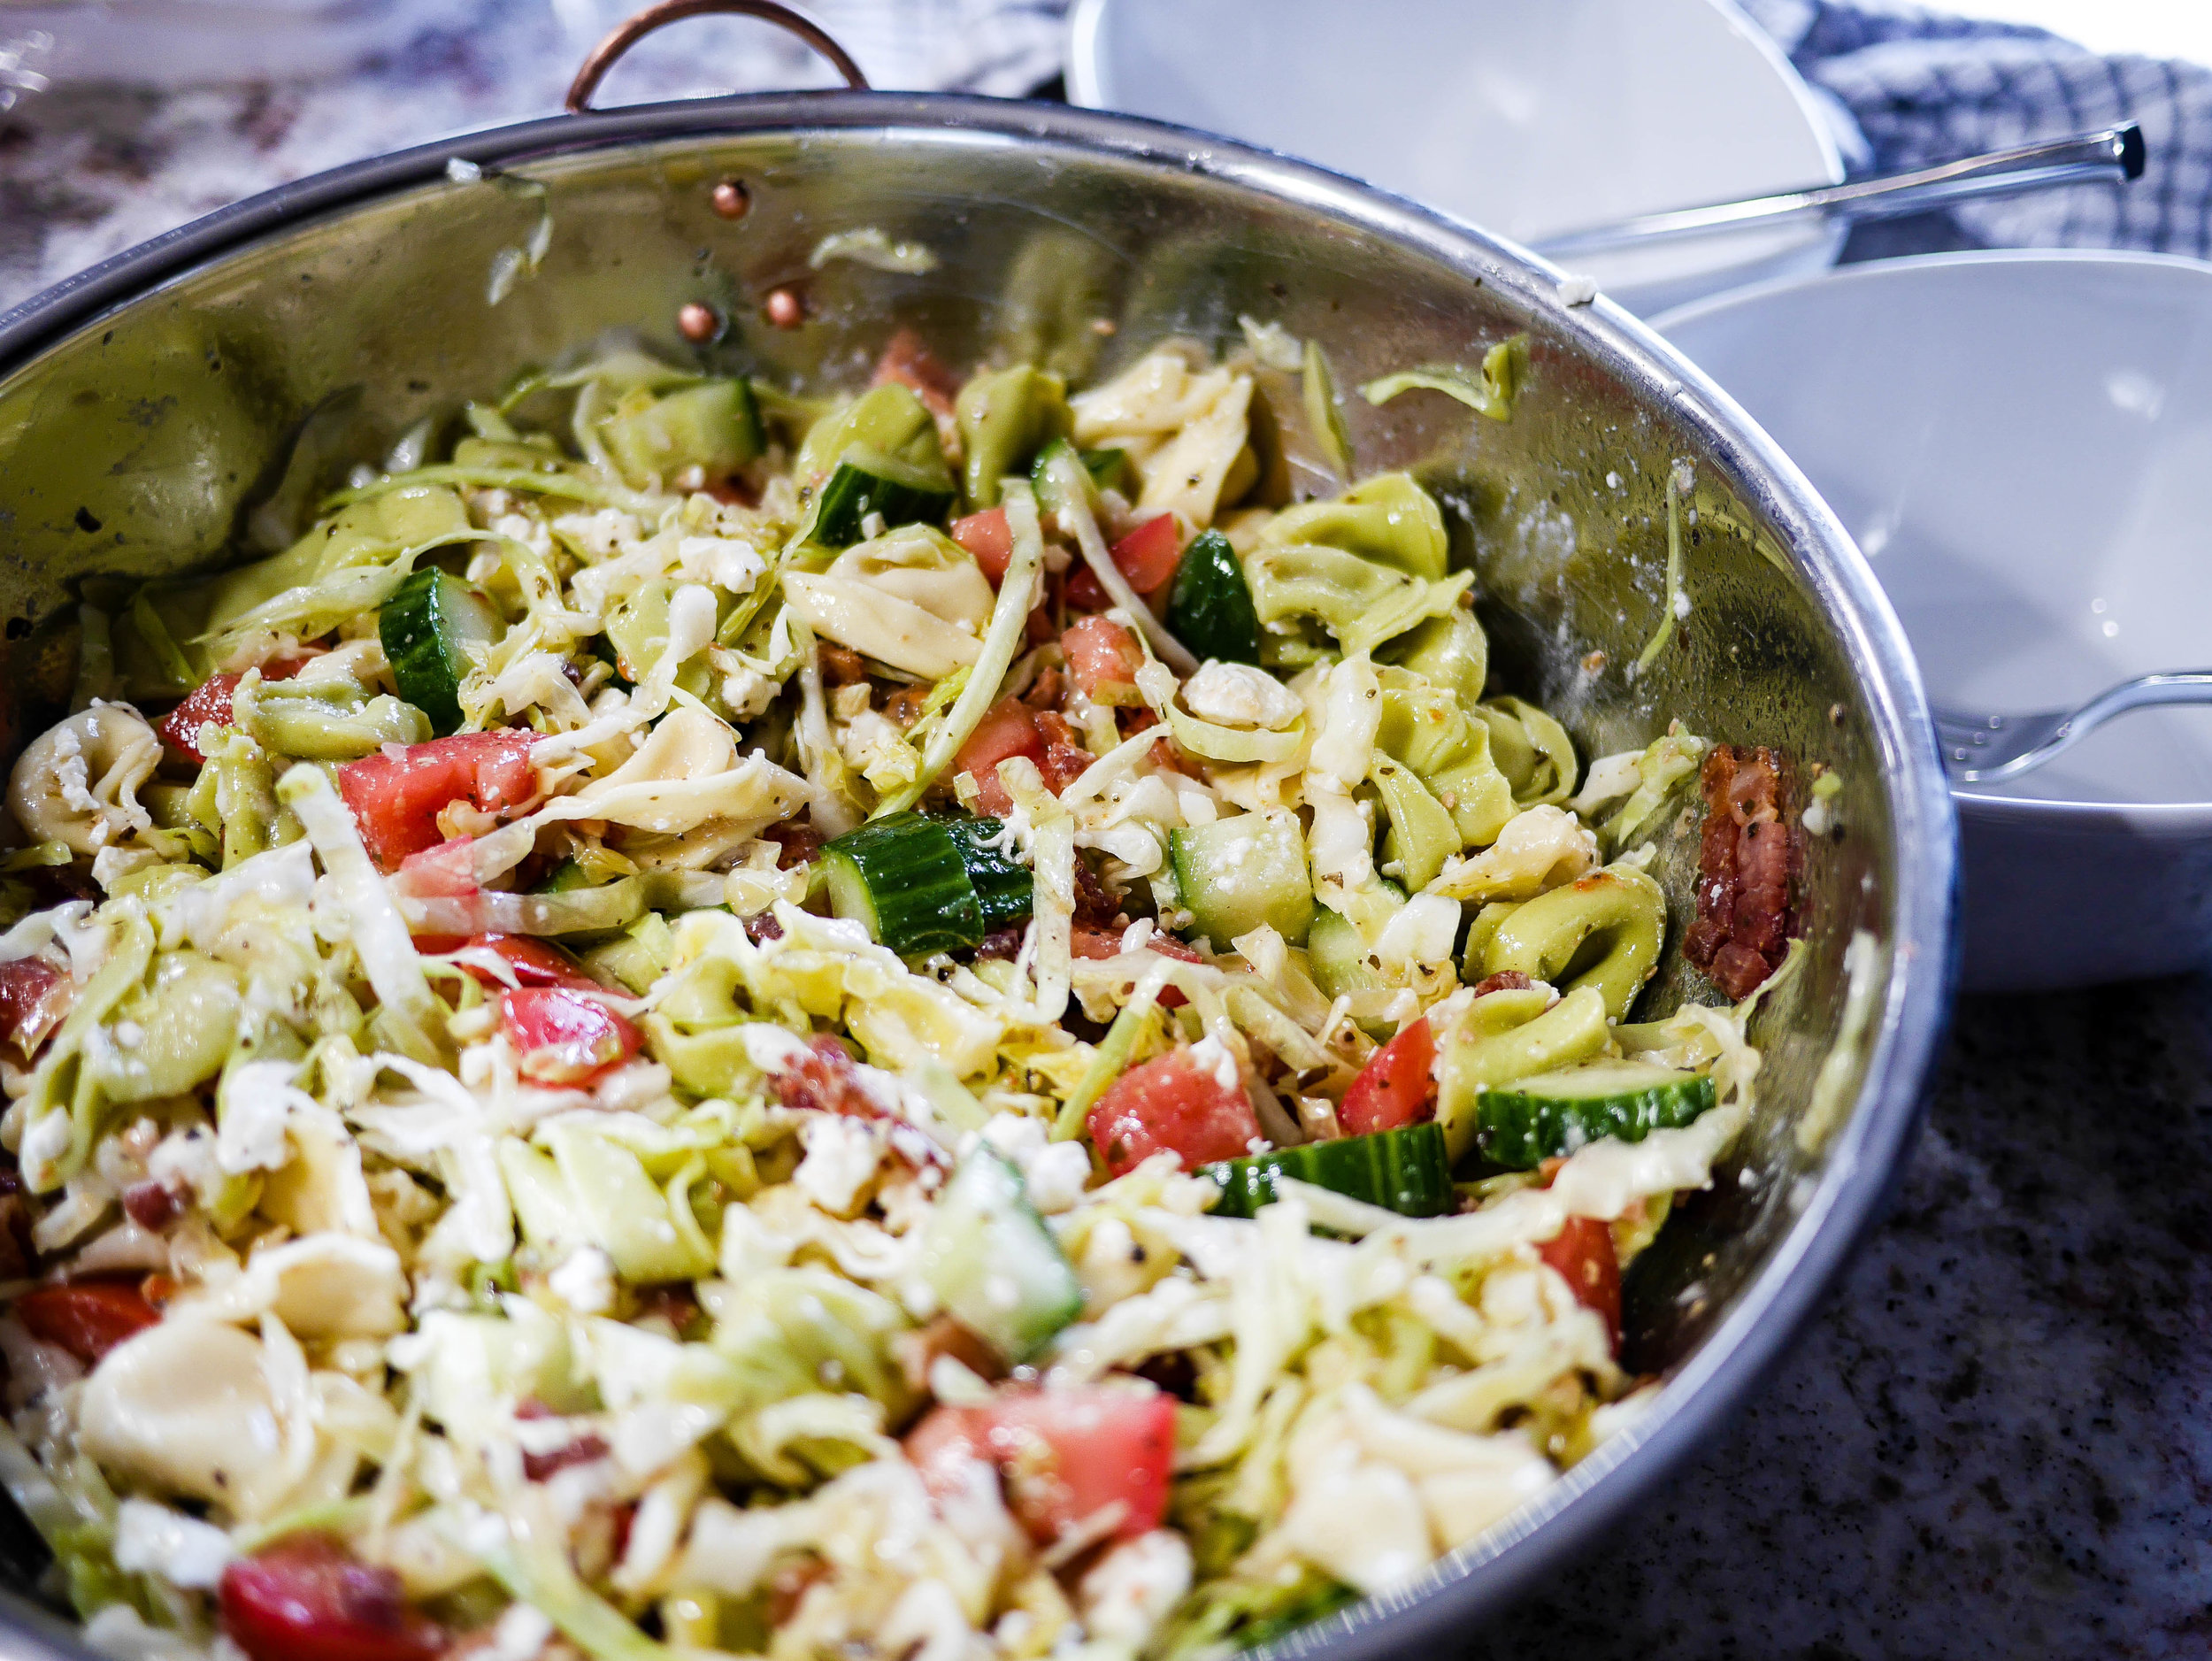 This tortellini pasta salad from melaniewinters.com is crisp, fresh, easy and delicious! Perfect for a summer lunch or as a side for an outdoor BBQ!